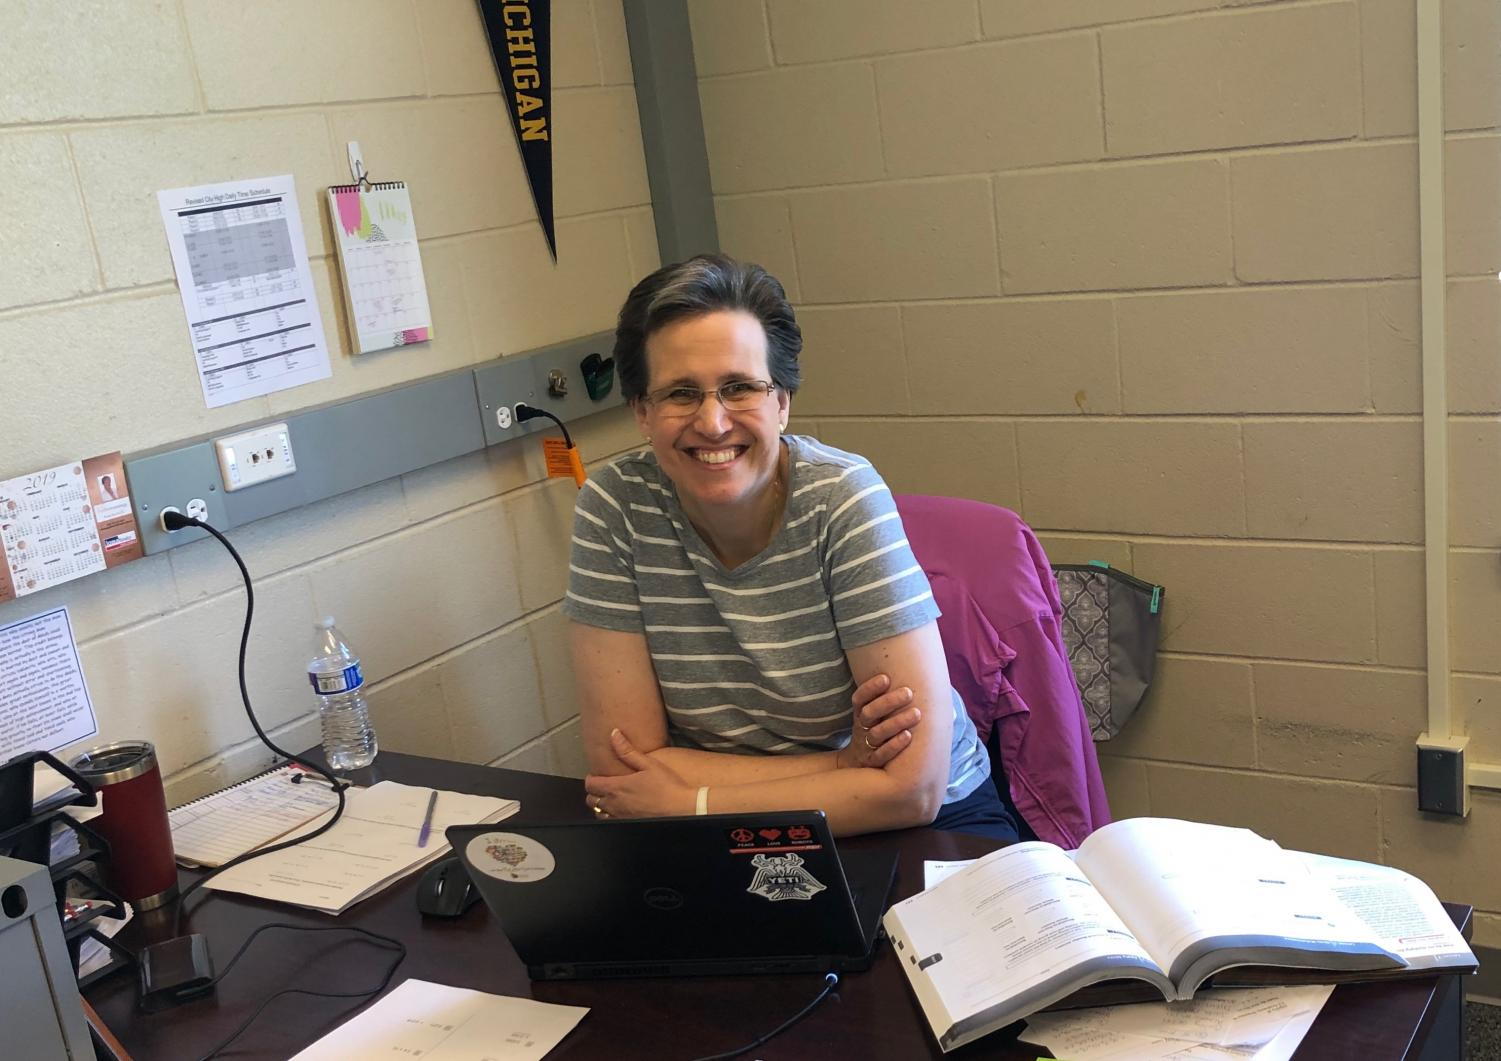 Mrs. Mons poses in her classroom